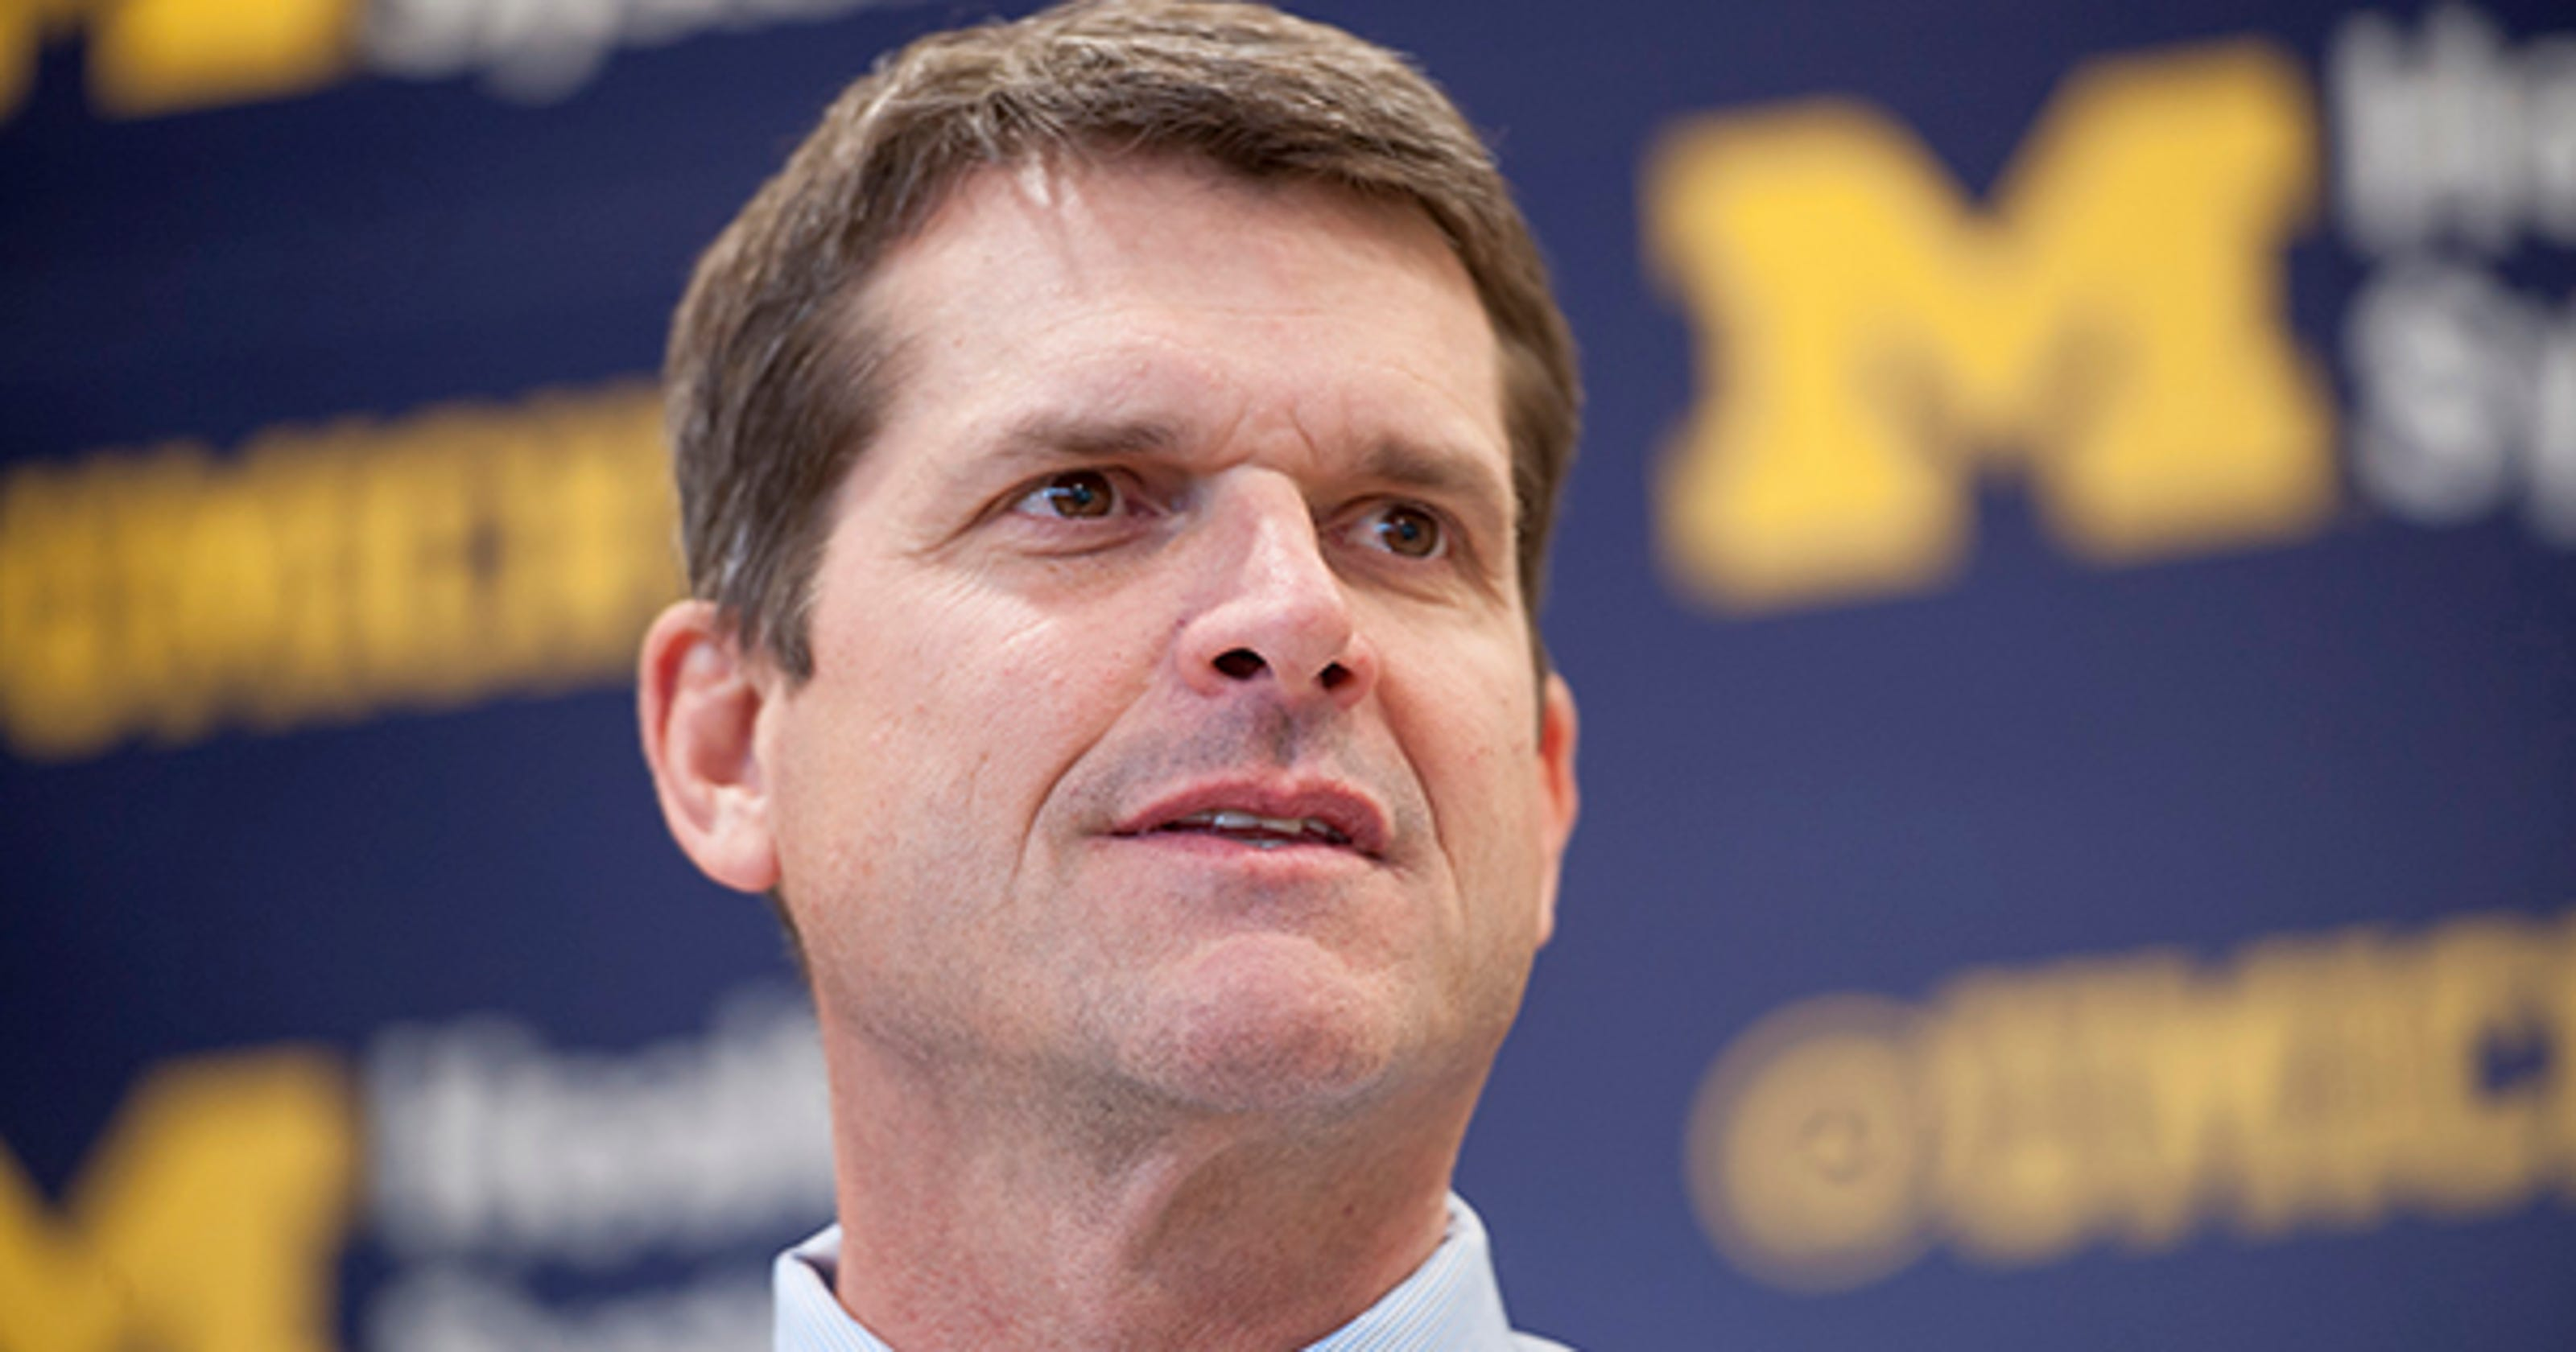 4b2c5abdda Jim Harbaugh joins Michelle Obama at education event